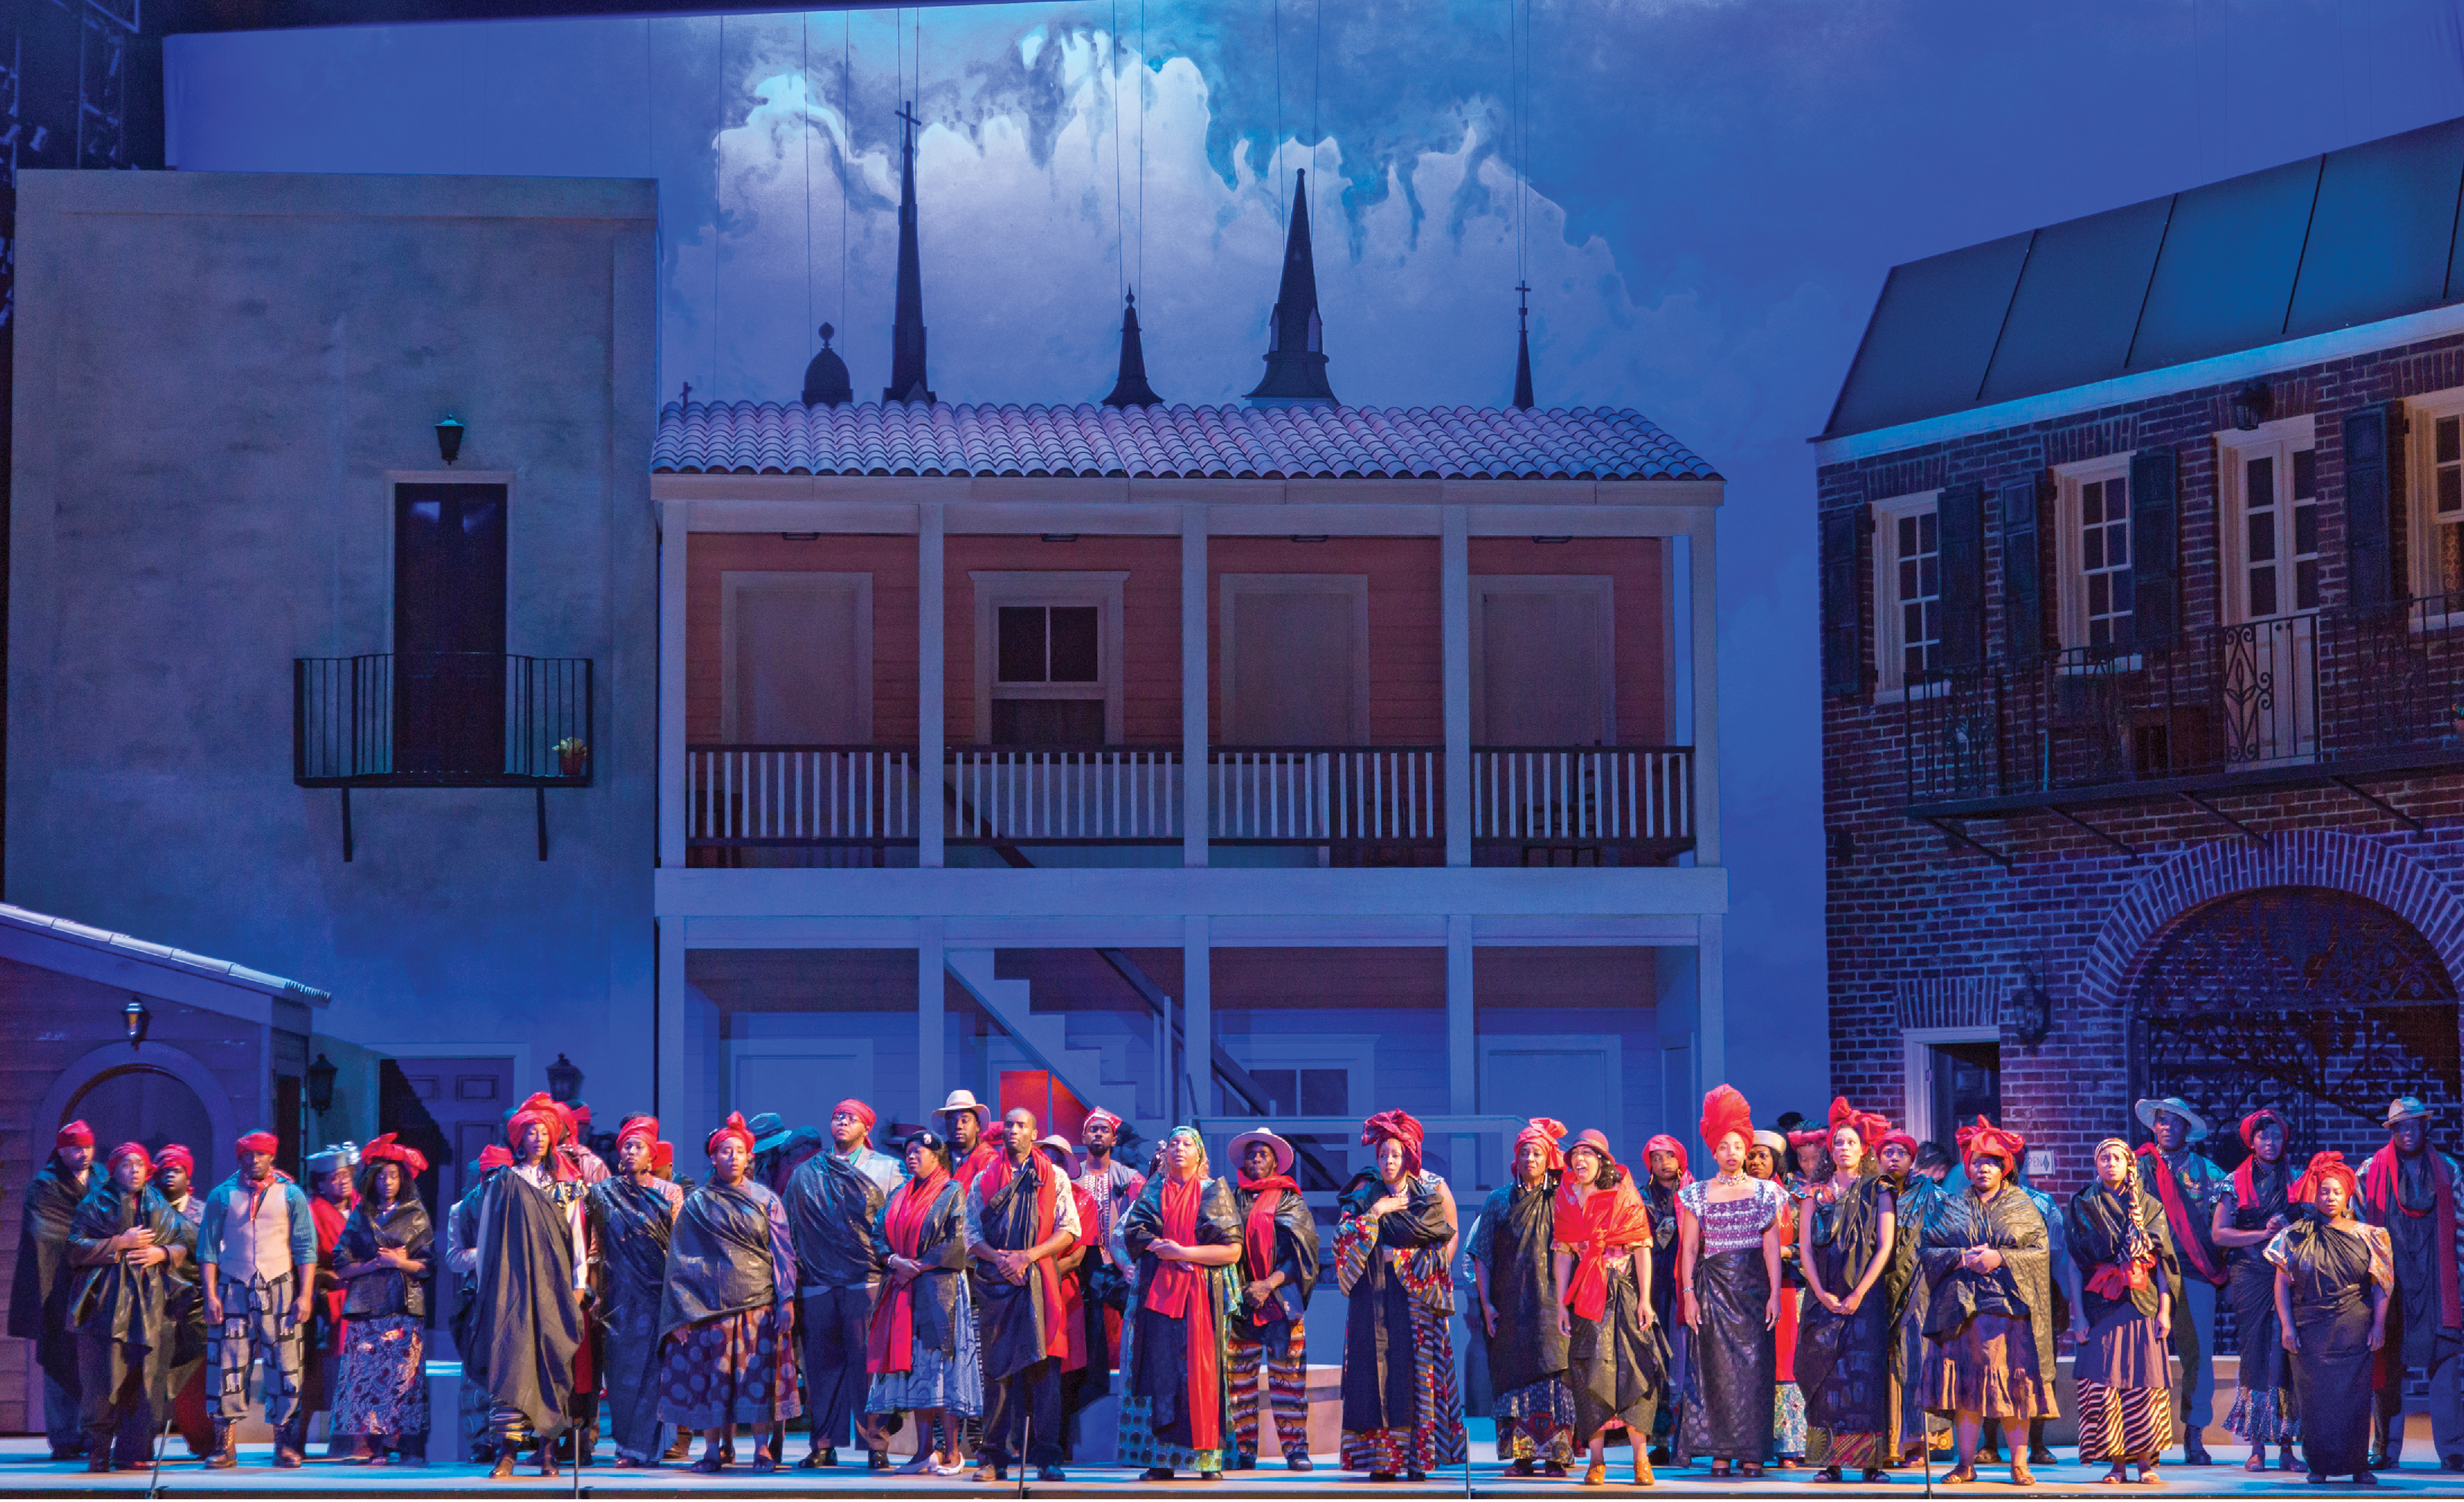 A scene from Spoleto Festival USA's 2016 production of Porgy and Bess, the premiere production that christened the new Gaillard Center and showcased the visual design of local artist Jonathan Green